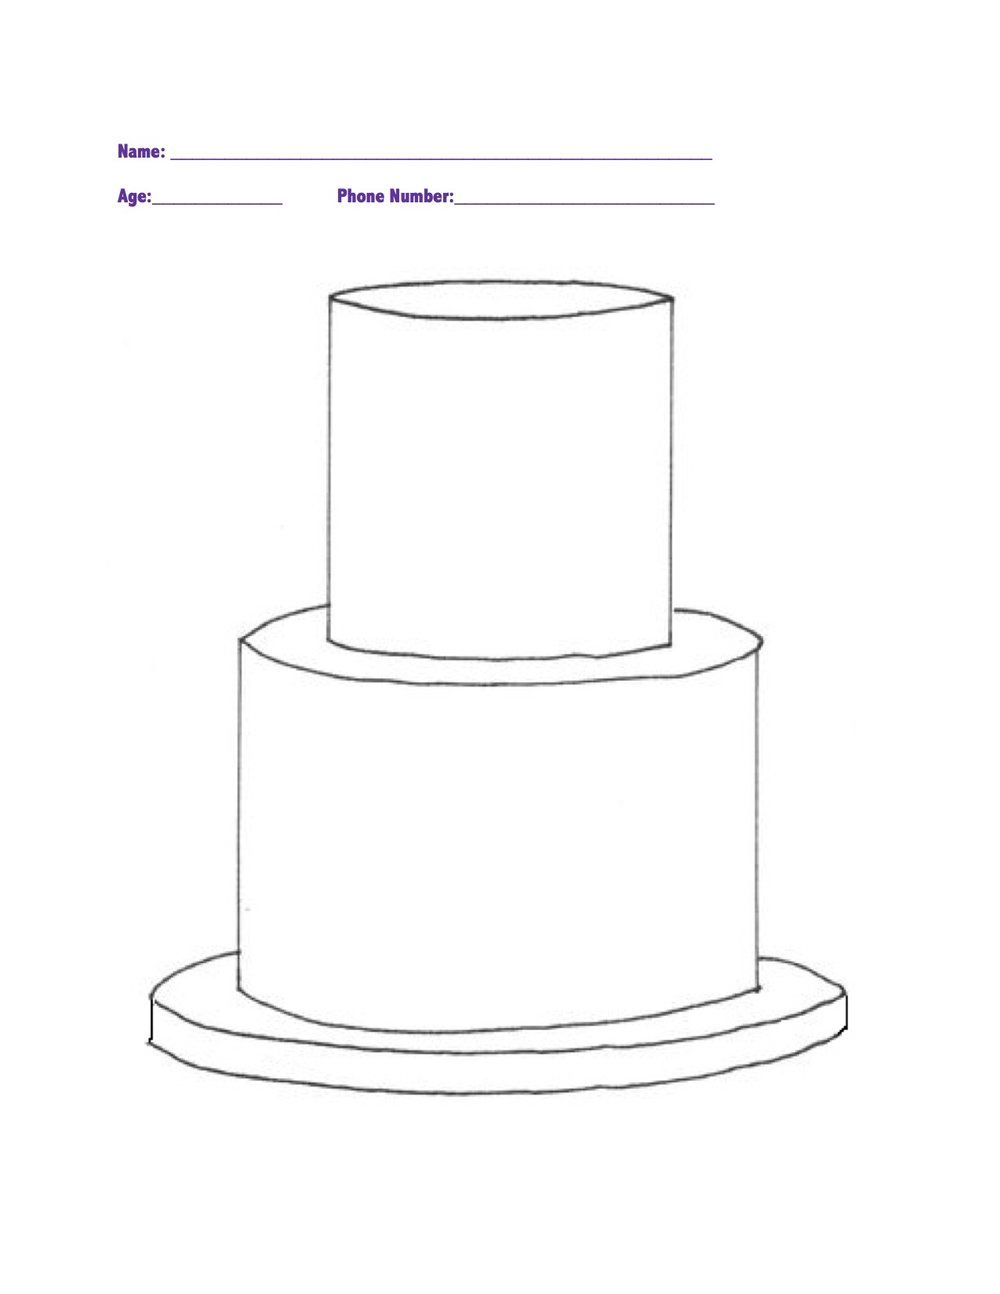 1st Junior Cake Design Challenge template copy.jpg